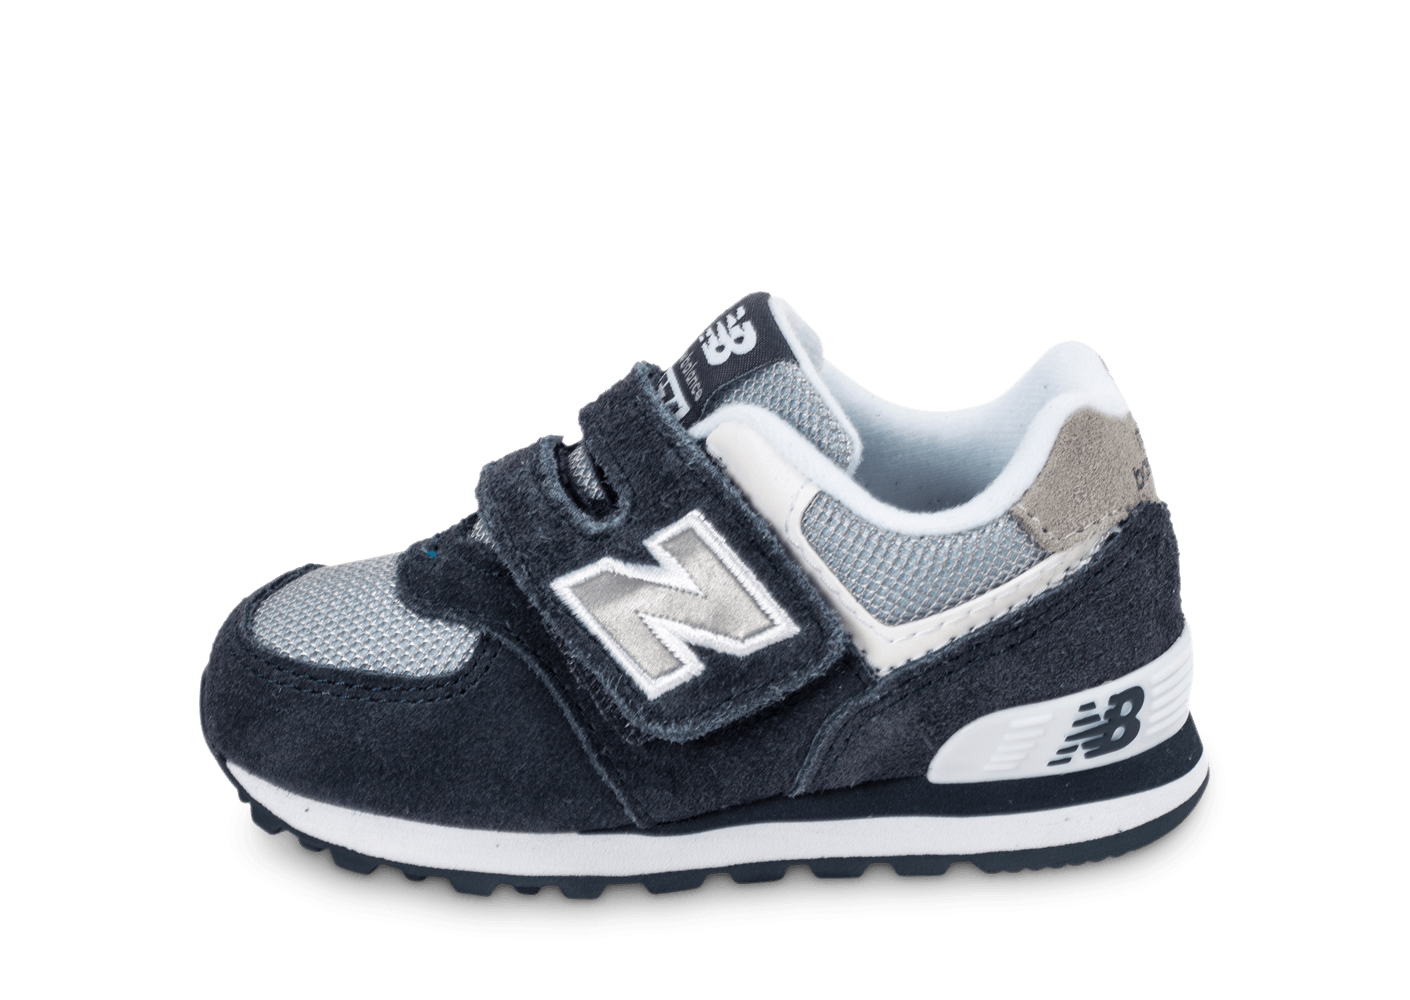 new balance kv574 b b bleu marine chaussures enfant chausport. Black Bedroom Furniture Sets. Home Design Ideas